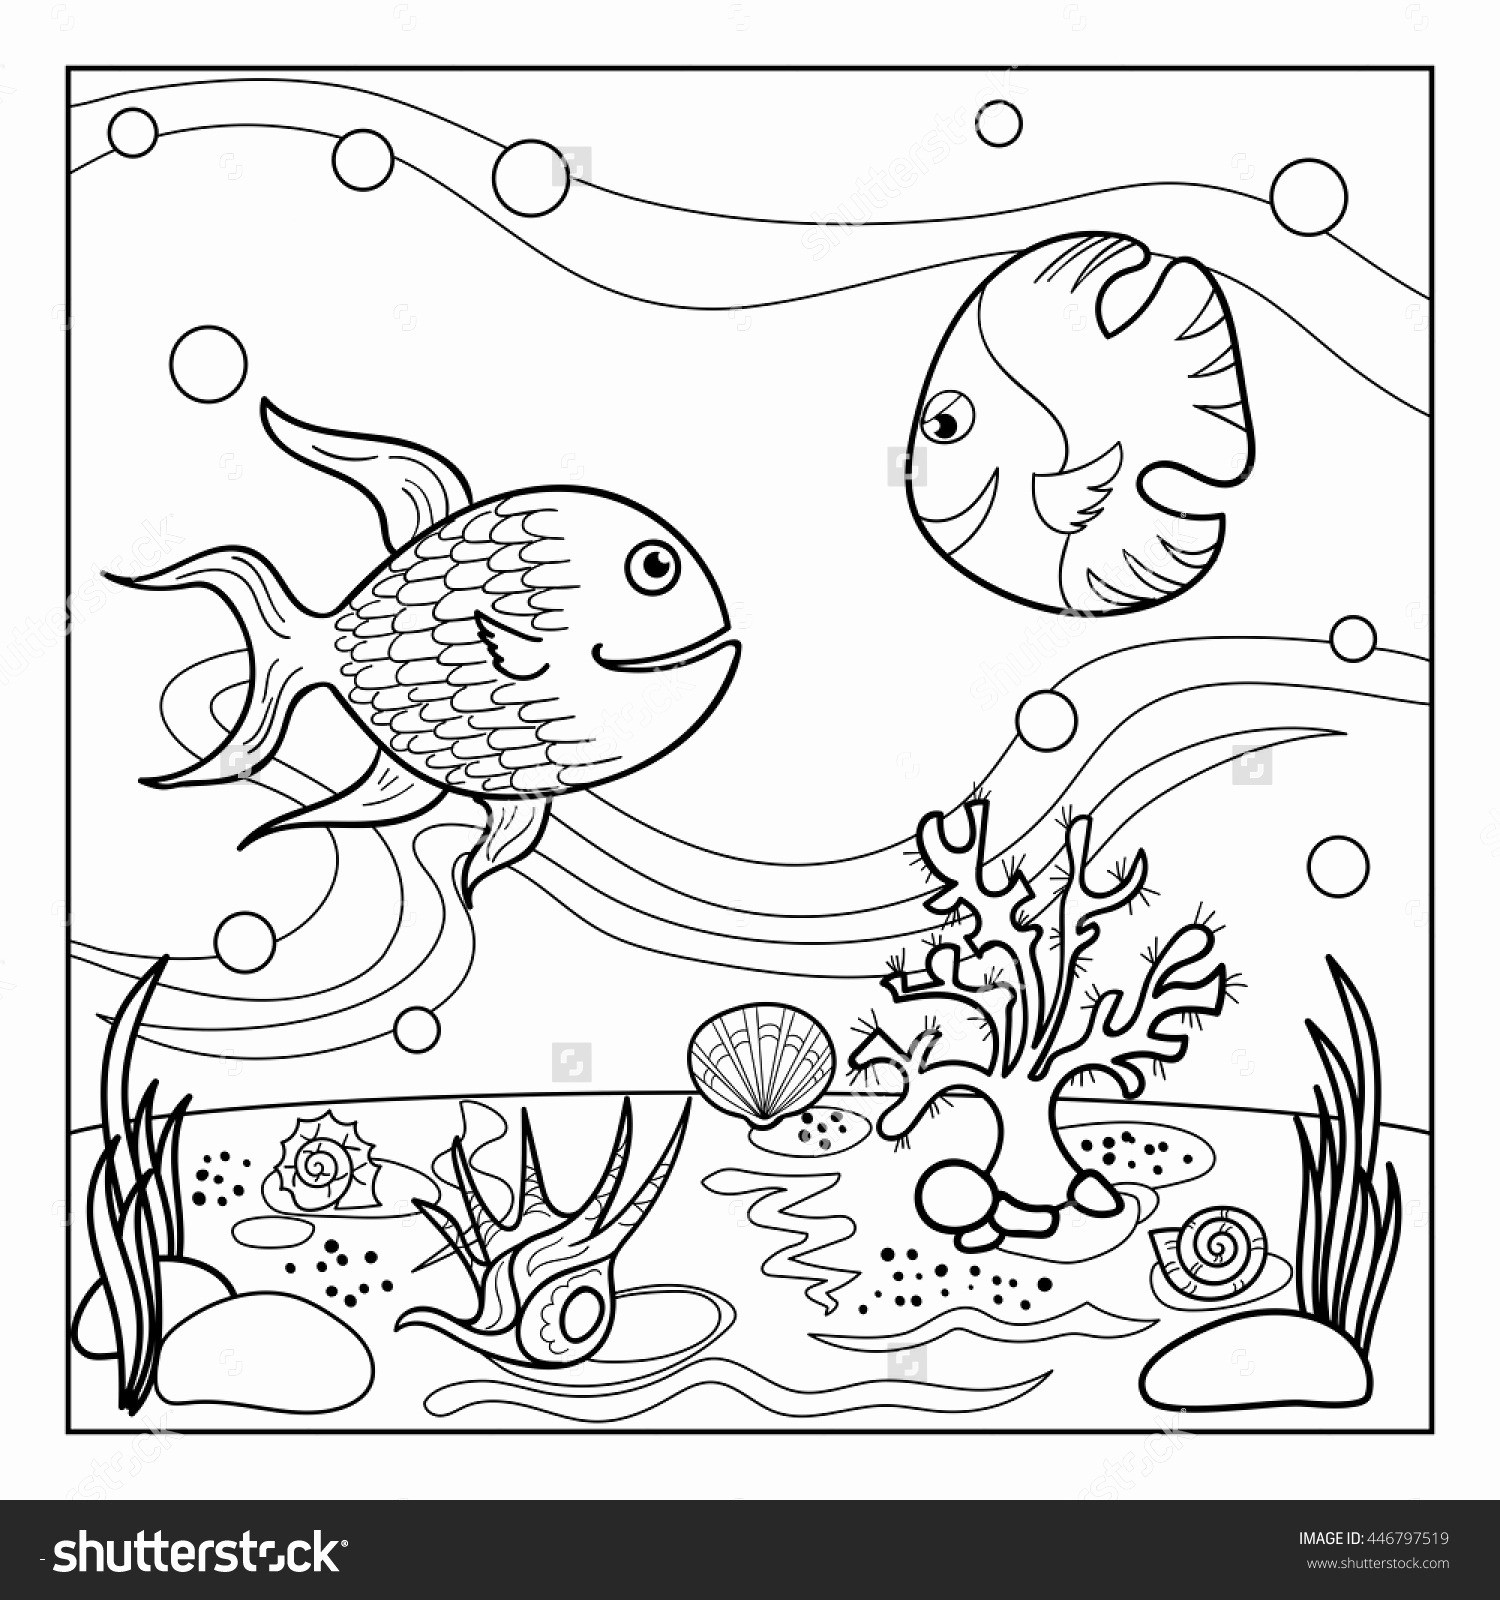 How to Make Coloring Pages  to Print 20d - Free Download